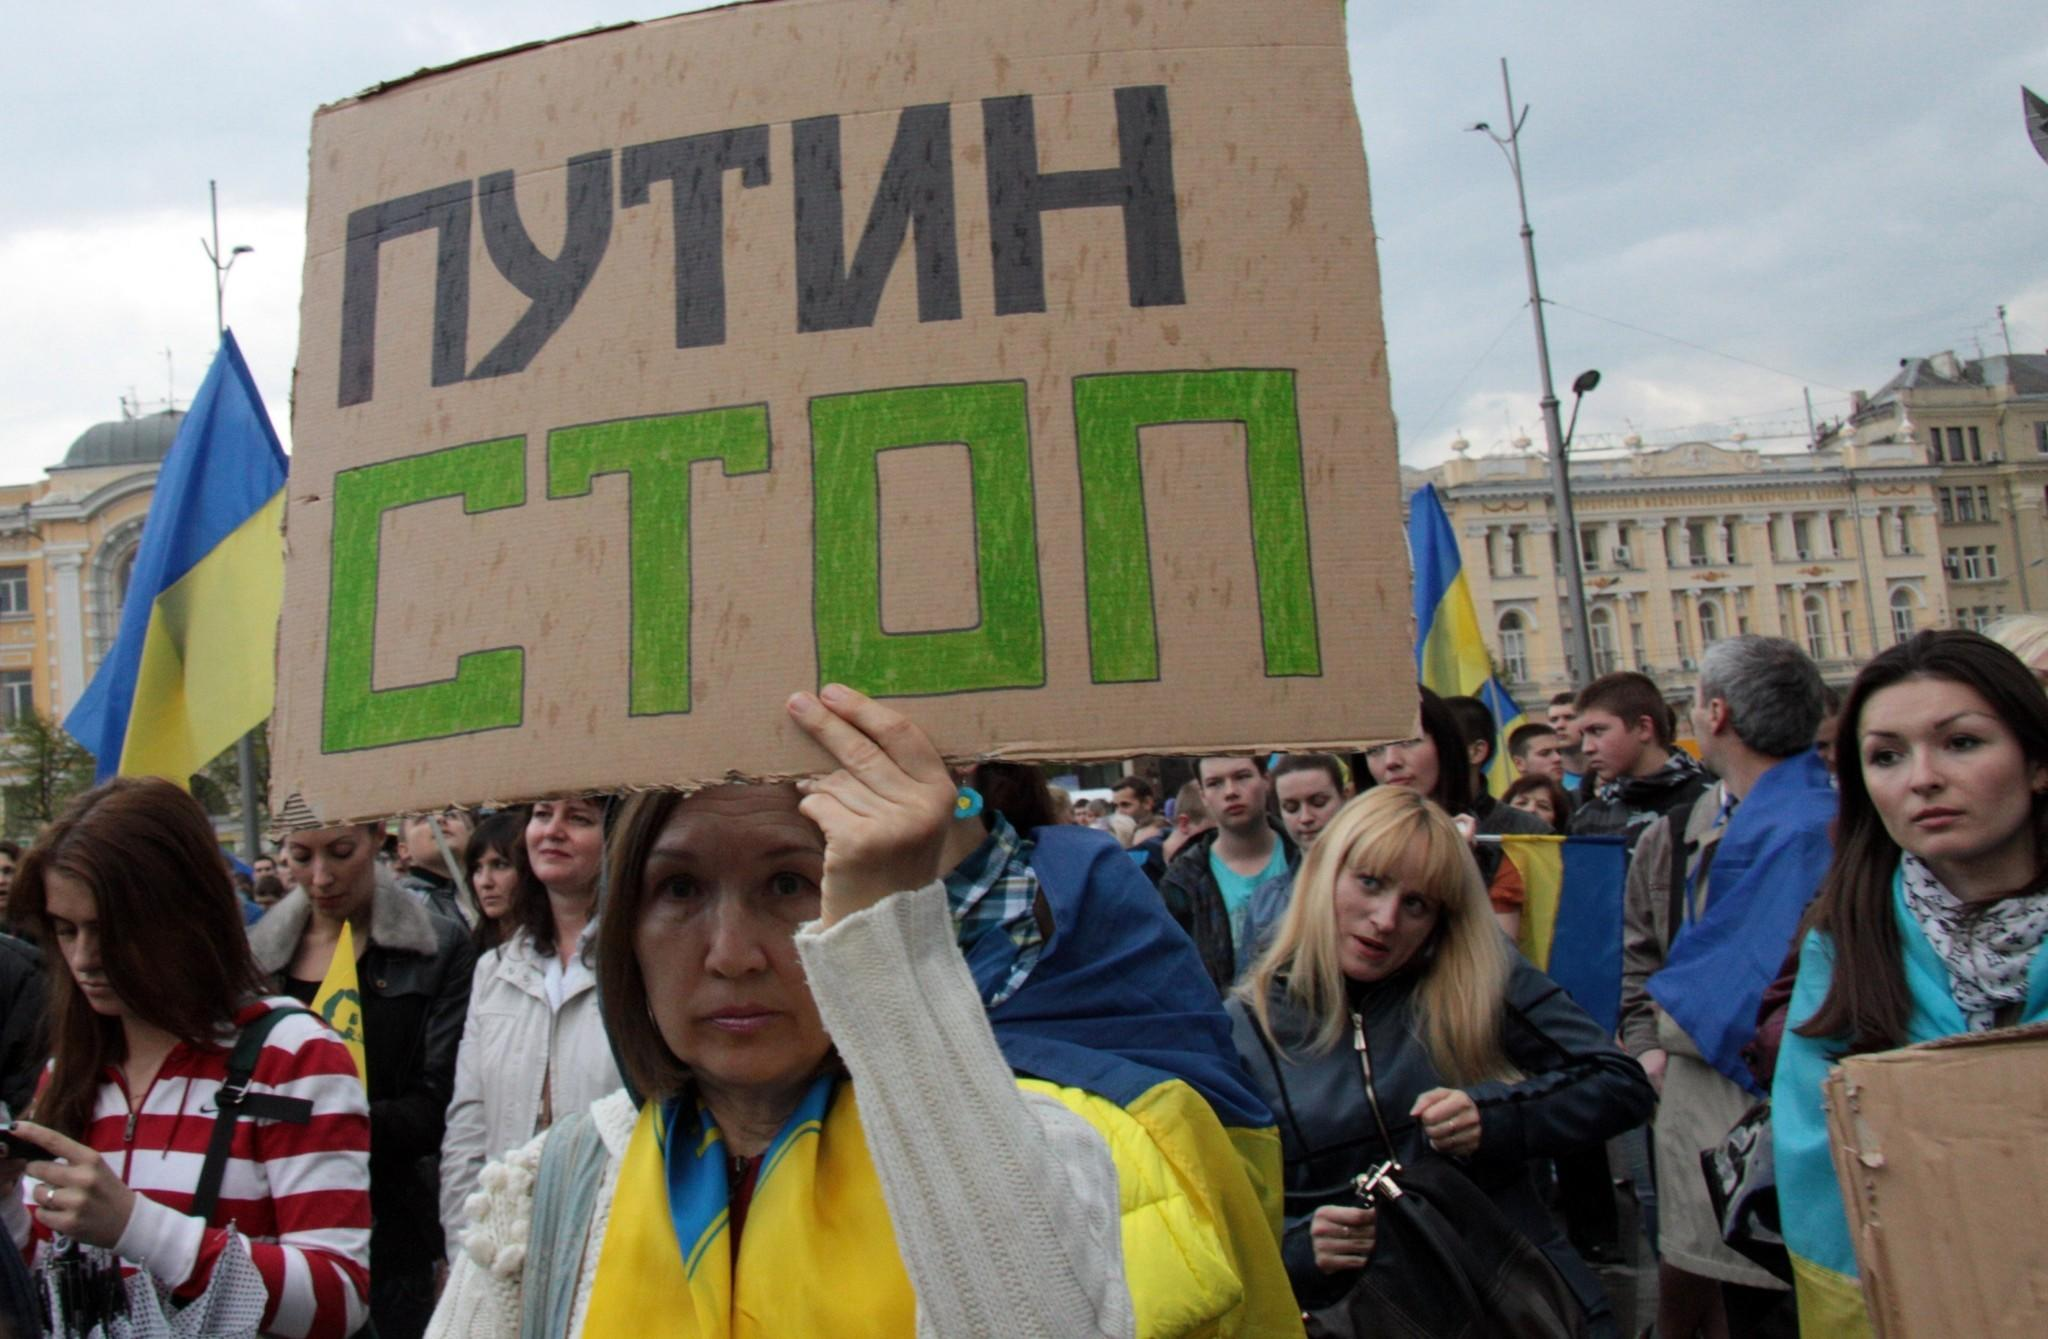 """A woman draped in the Ukrainian flag hoists a sign urging """"Putin Stop"""" during a rally this week that drew 2,000 to show their support for Ukrainian unity in Kharkiv, Ukraine's second-largest city, which has a large Russian minority."""